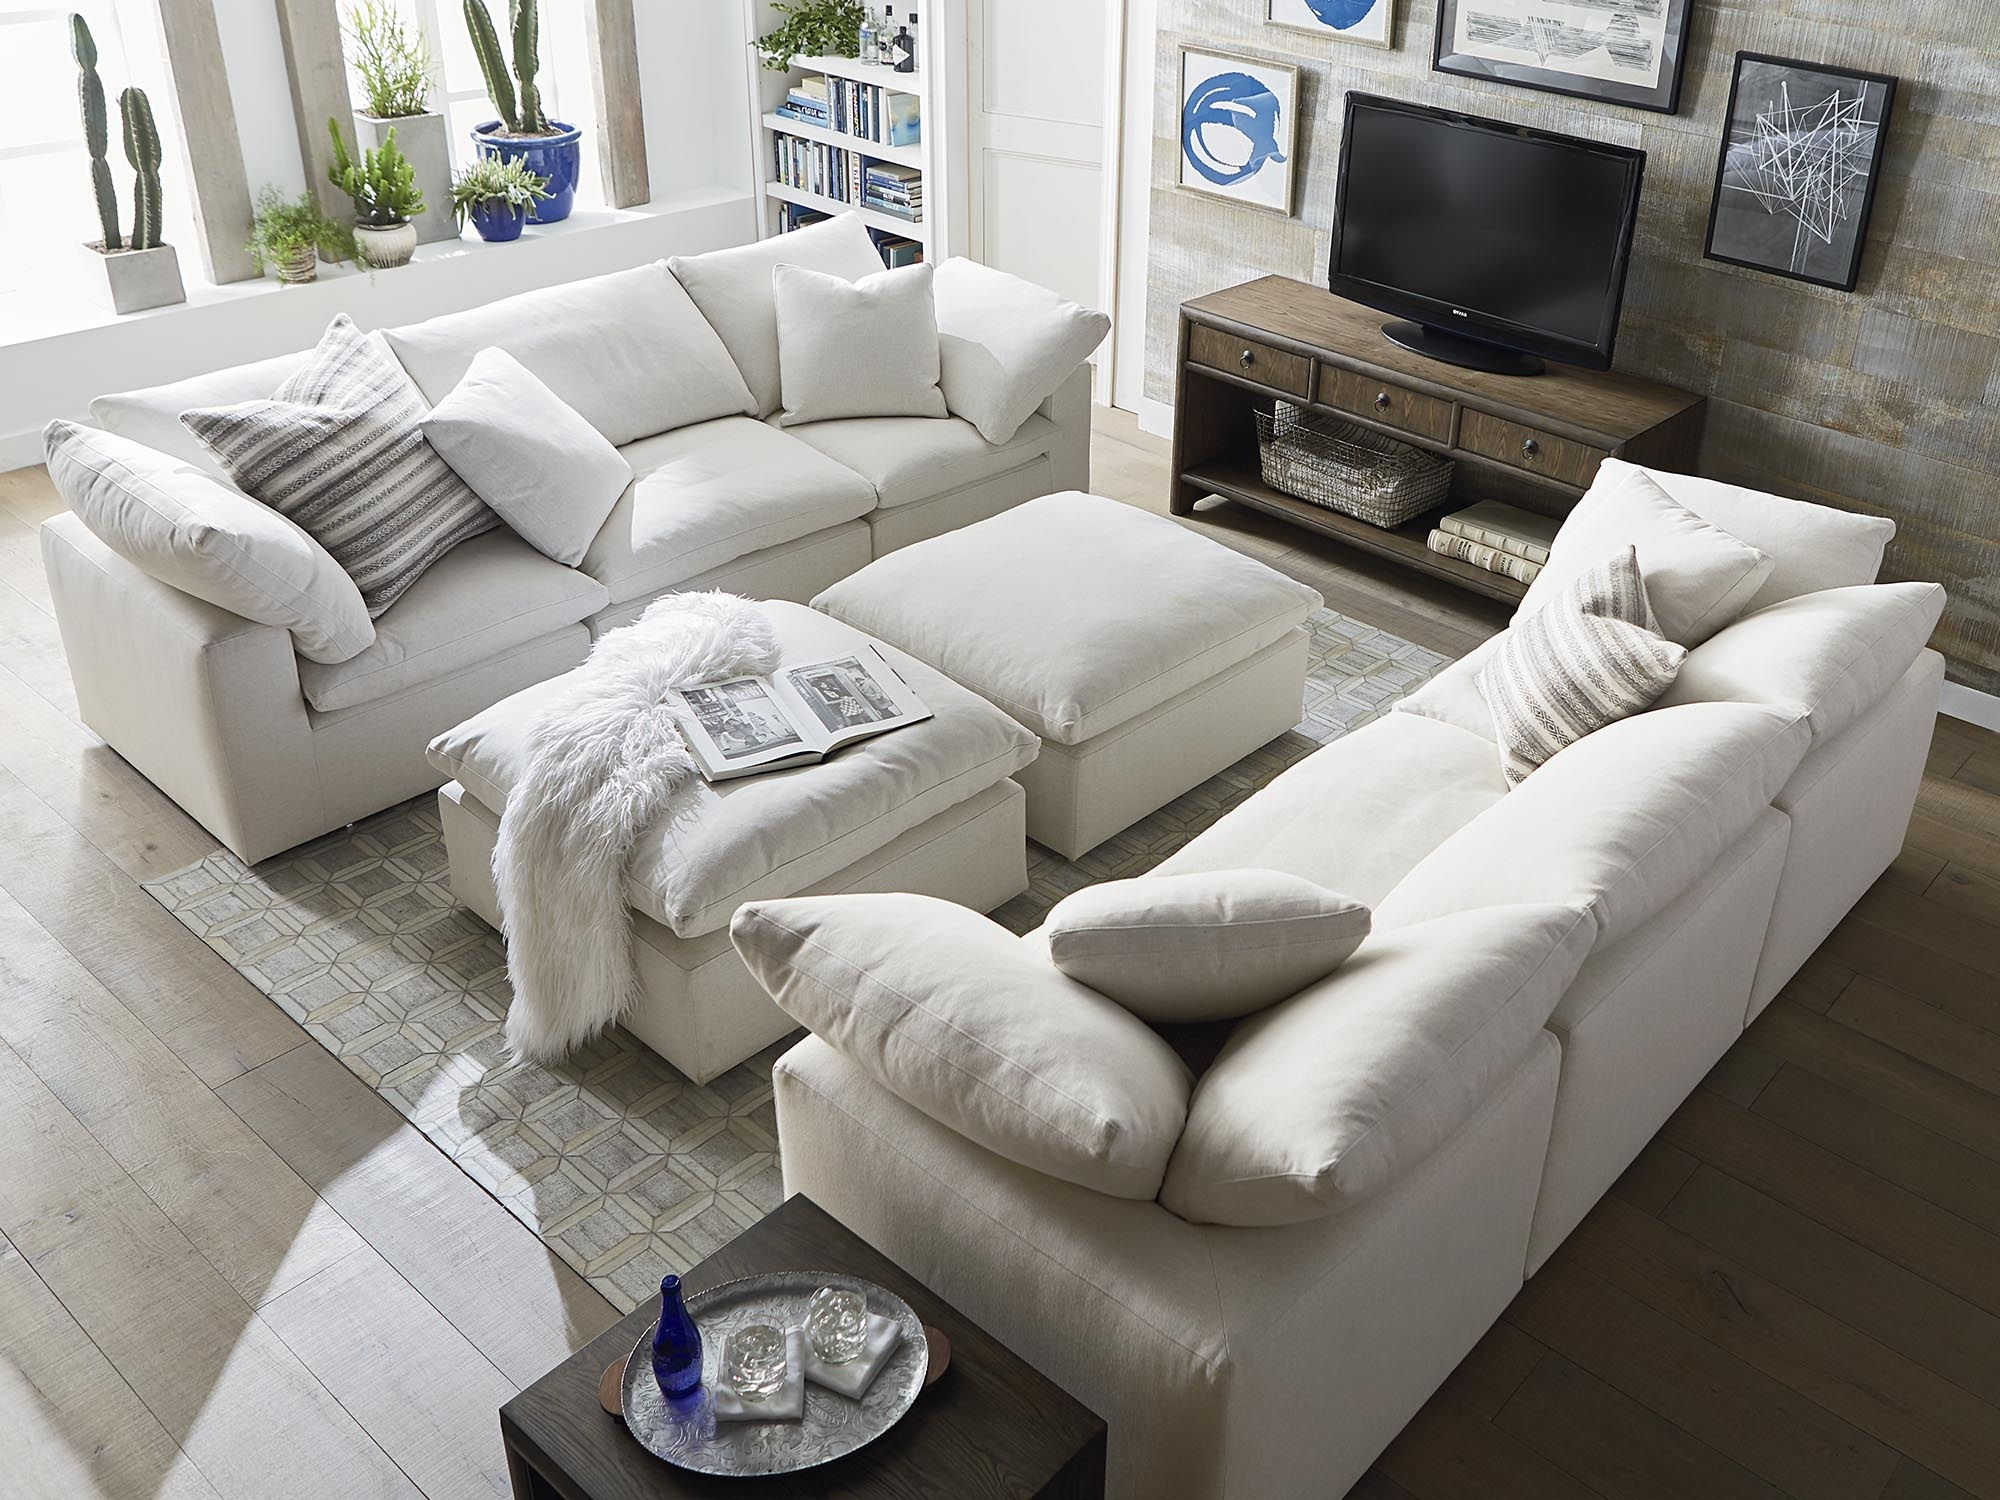 Fabric Sofas And Couchesbassett Home Furnishings Intended For Famous Scarborough Sectional Sofas (View 5 of 15)